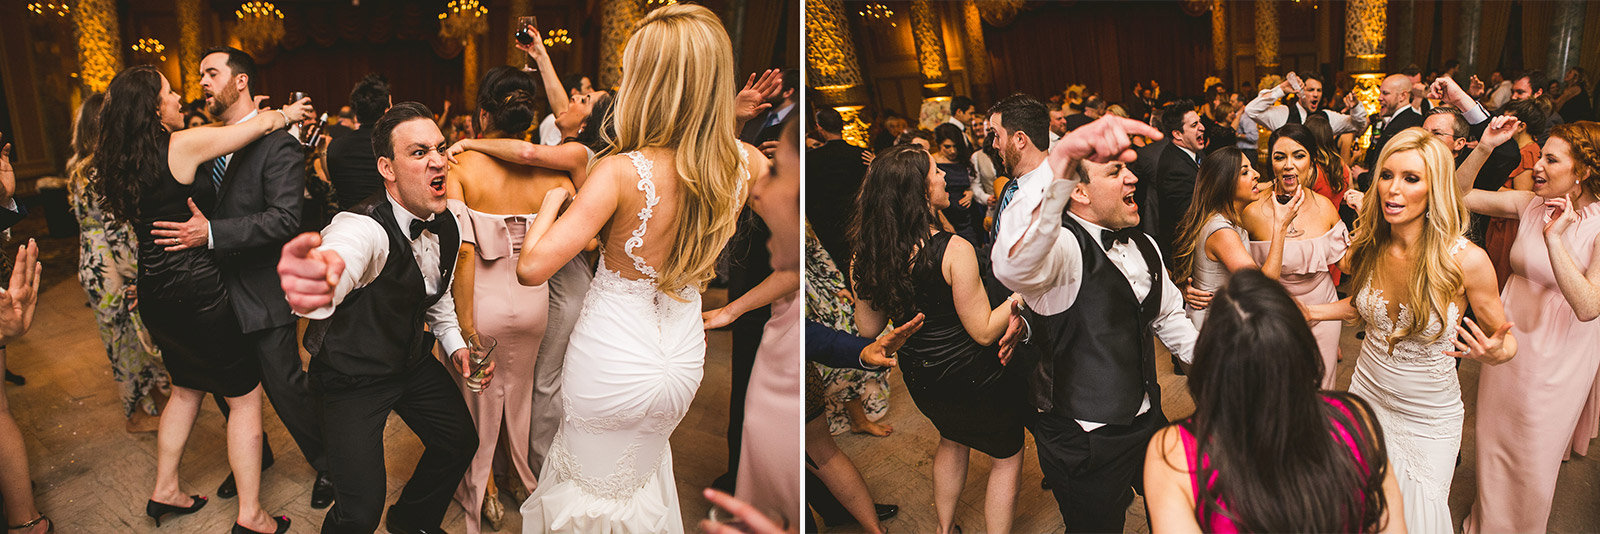 74 bride and groom dancing - Kayla + Terry // Drake Hotel Chicago Wedding Photos